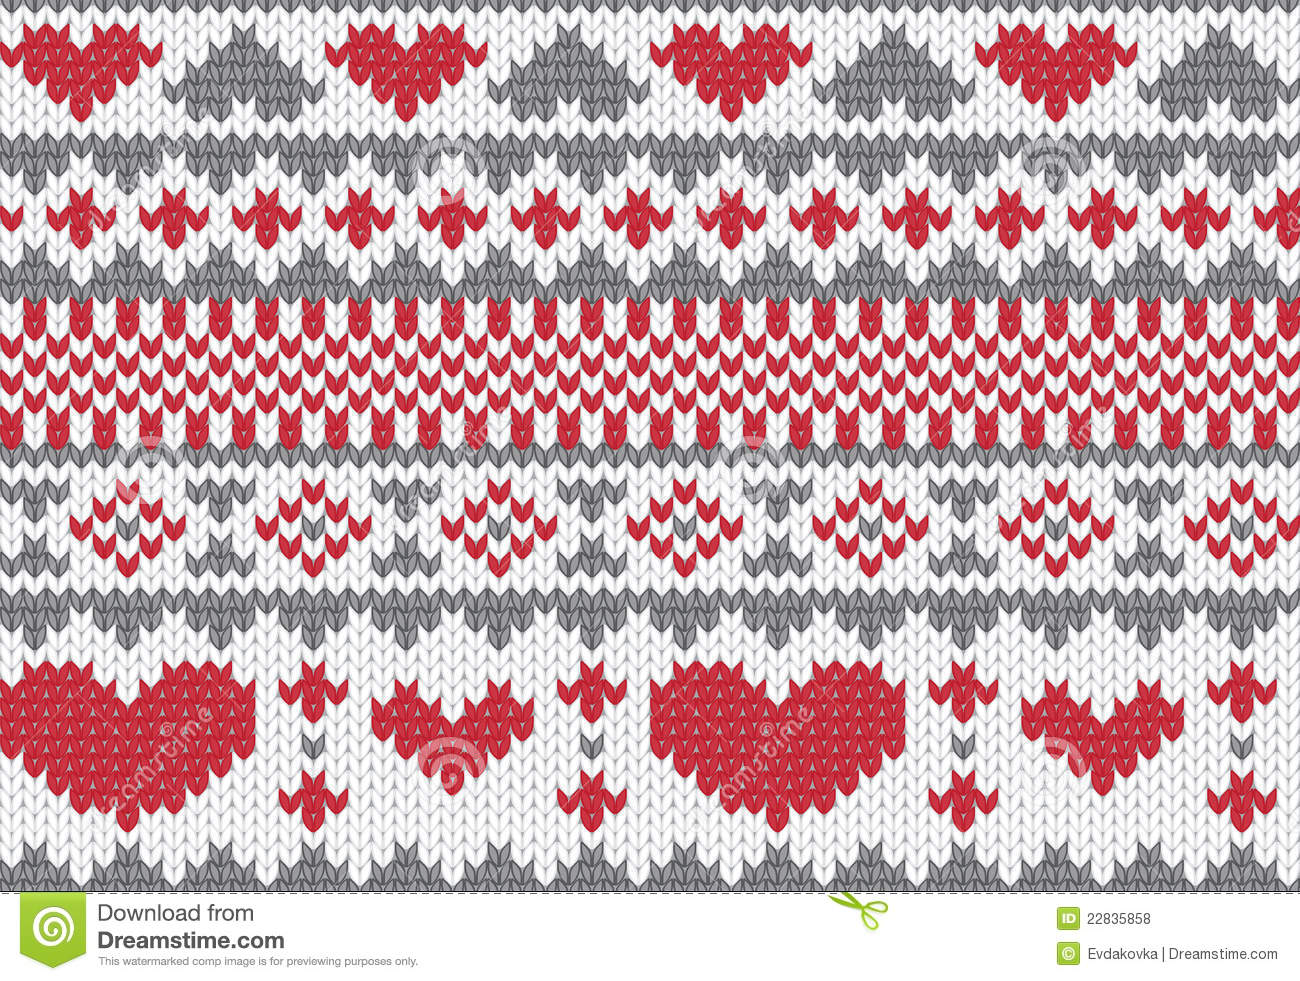 Heart Decoration Knitting Pattern : Knitted Pattern Vector With Hearts Royalty Free Stock ...